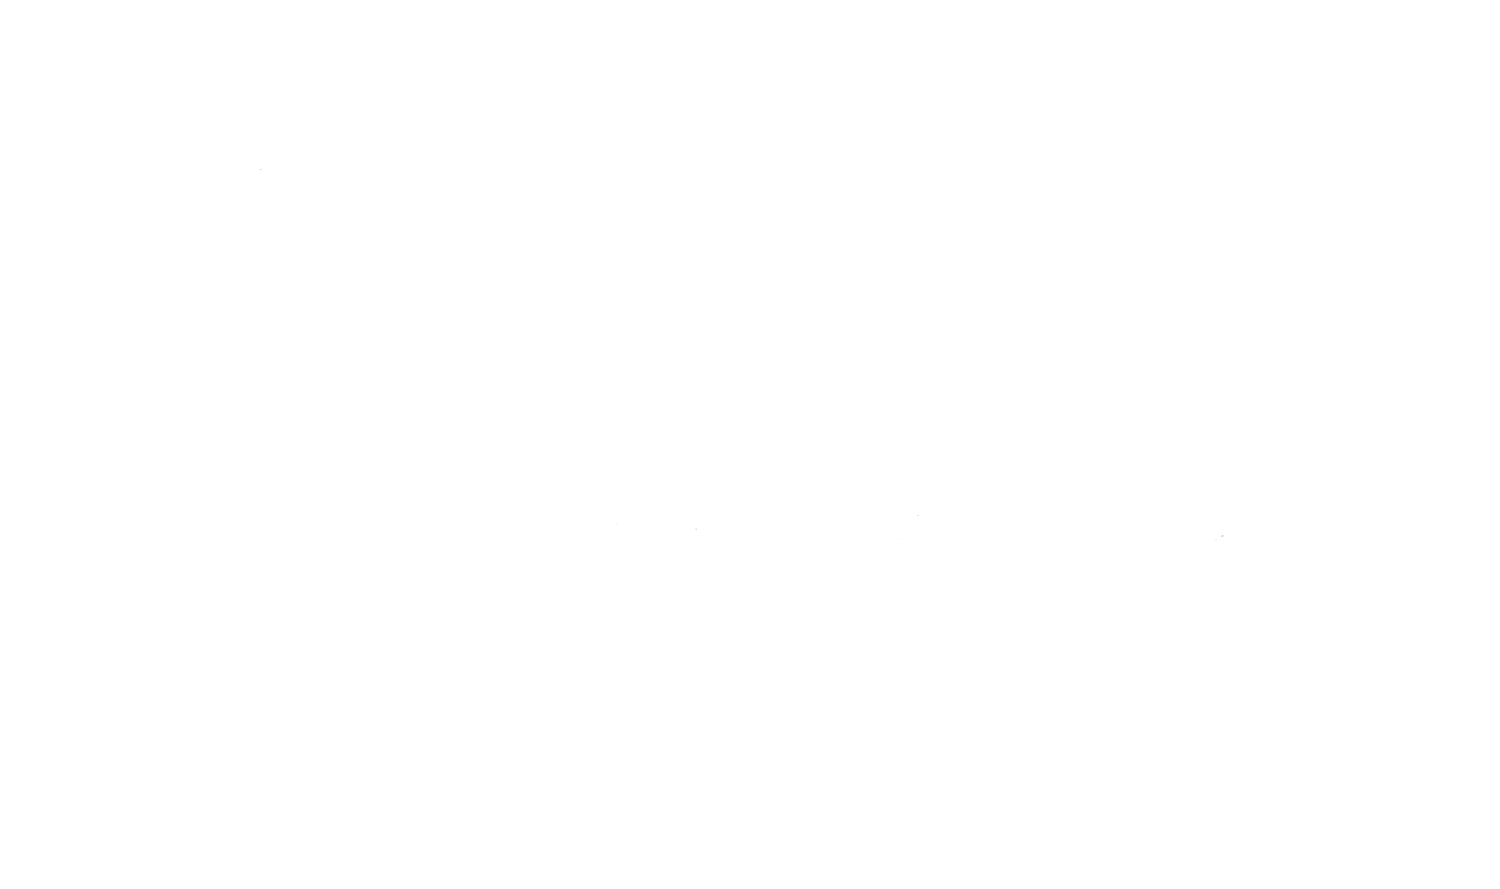 The League of Extraordinary Bellydancers